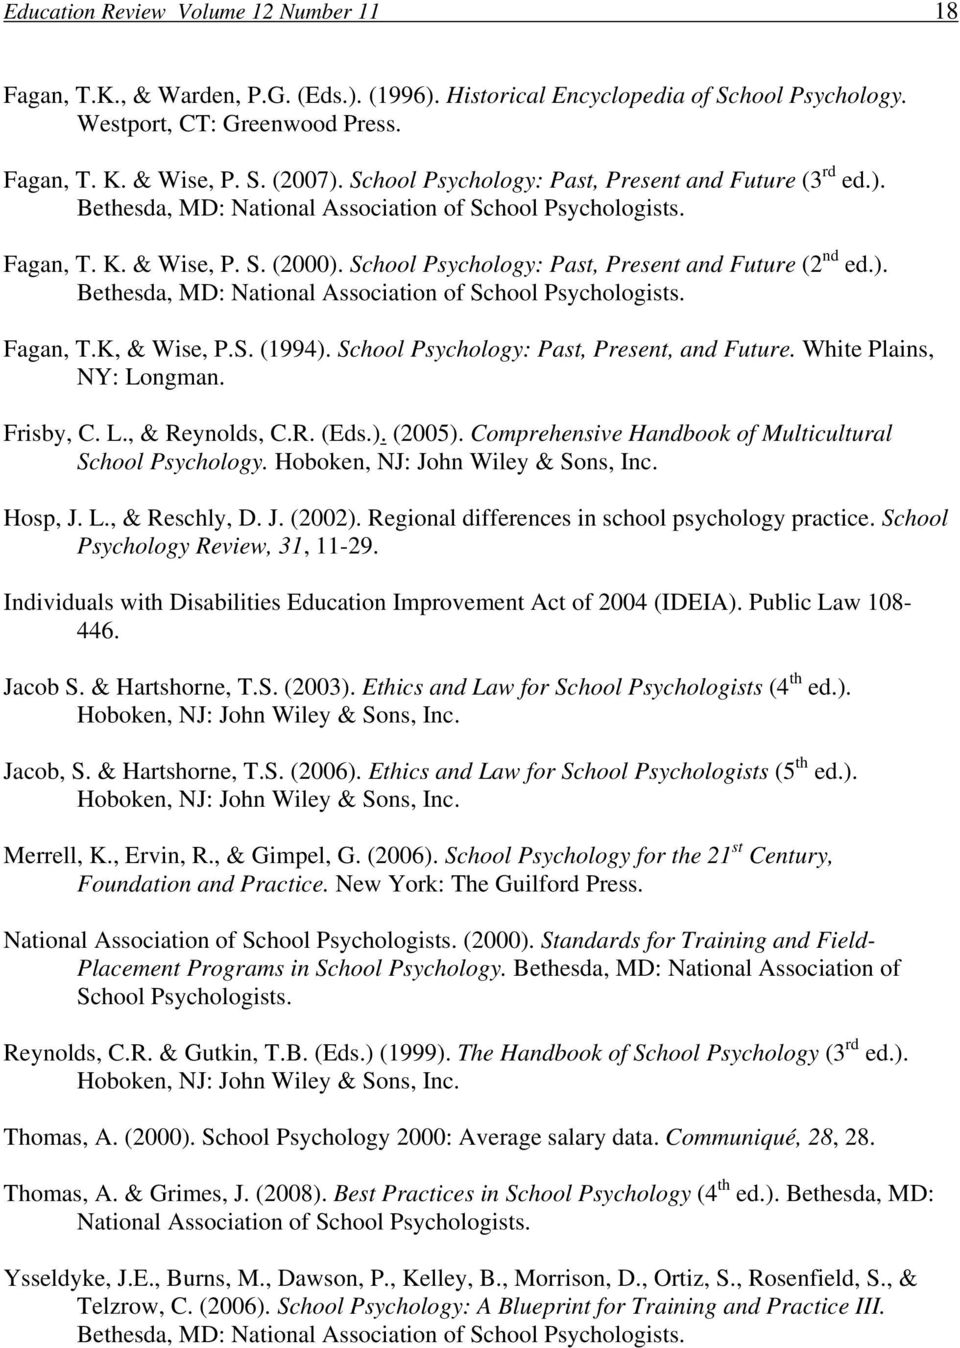 School Psychology: Past, Present and Future (2 nd ed.). Bethesda, MD: National Association of School Psychologists. Fagan, T.K, & Wise, P.S. (1994). School Psychology: Past, Present, and Future.